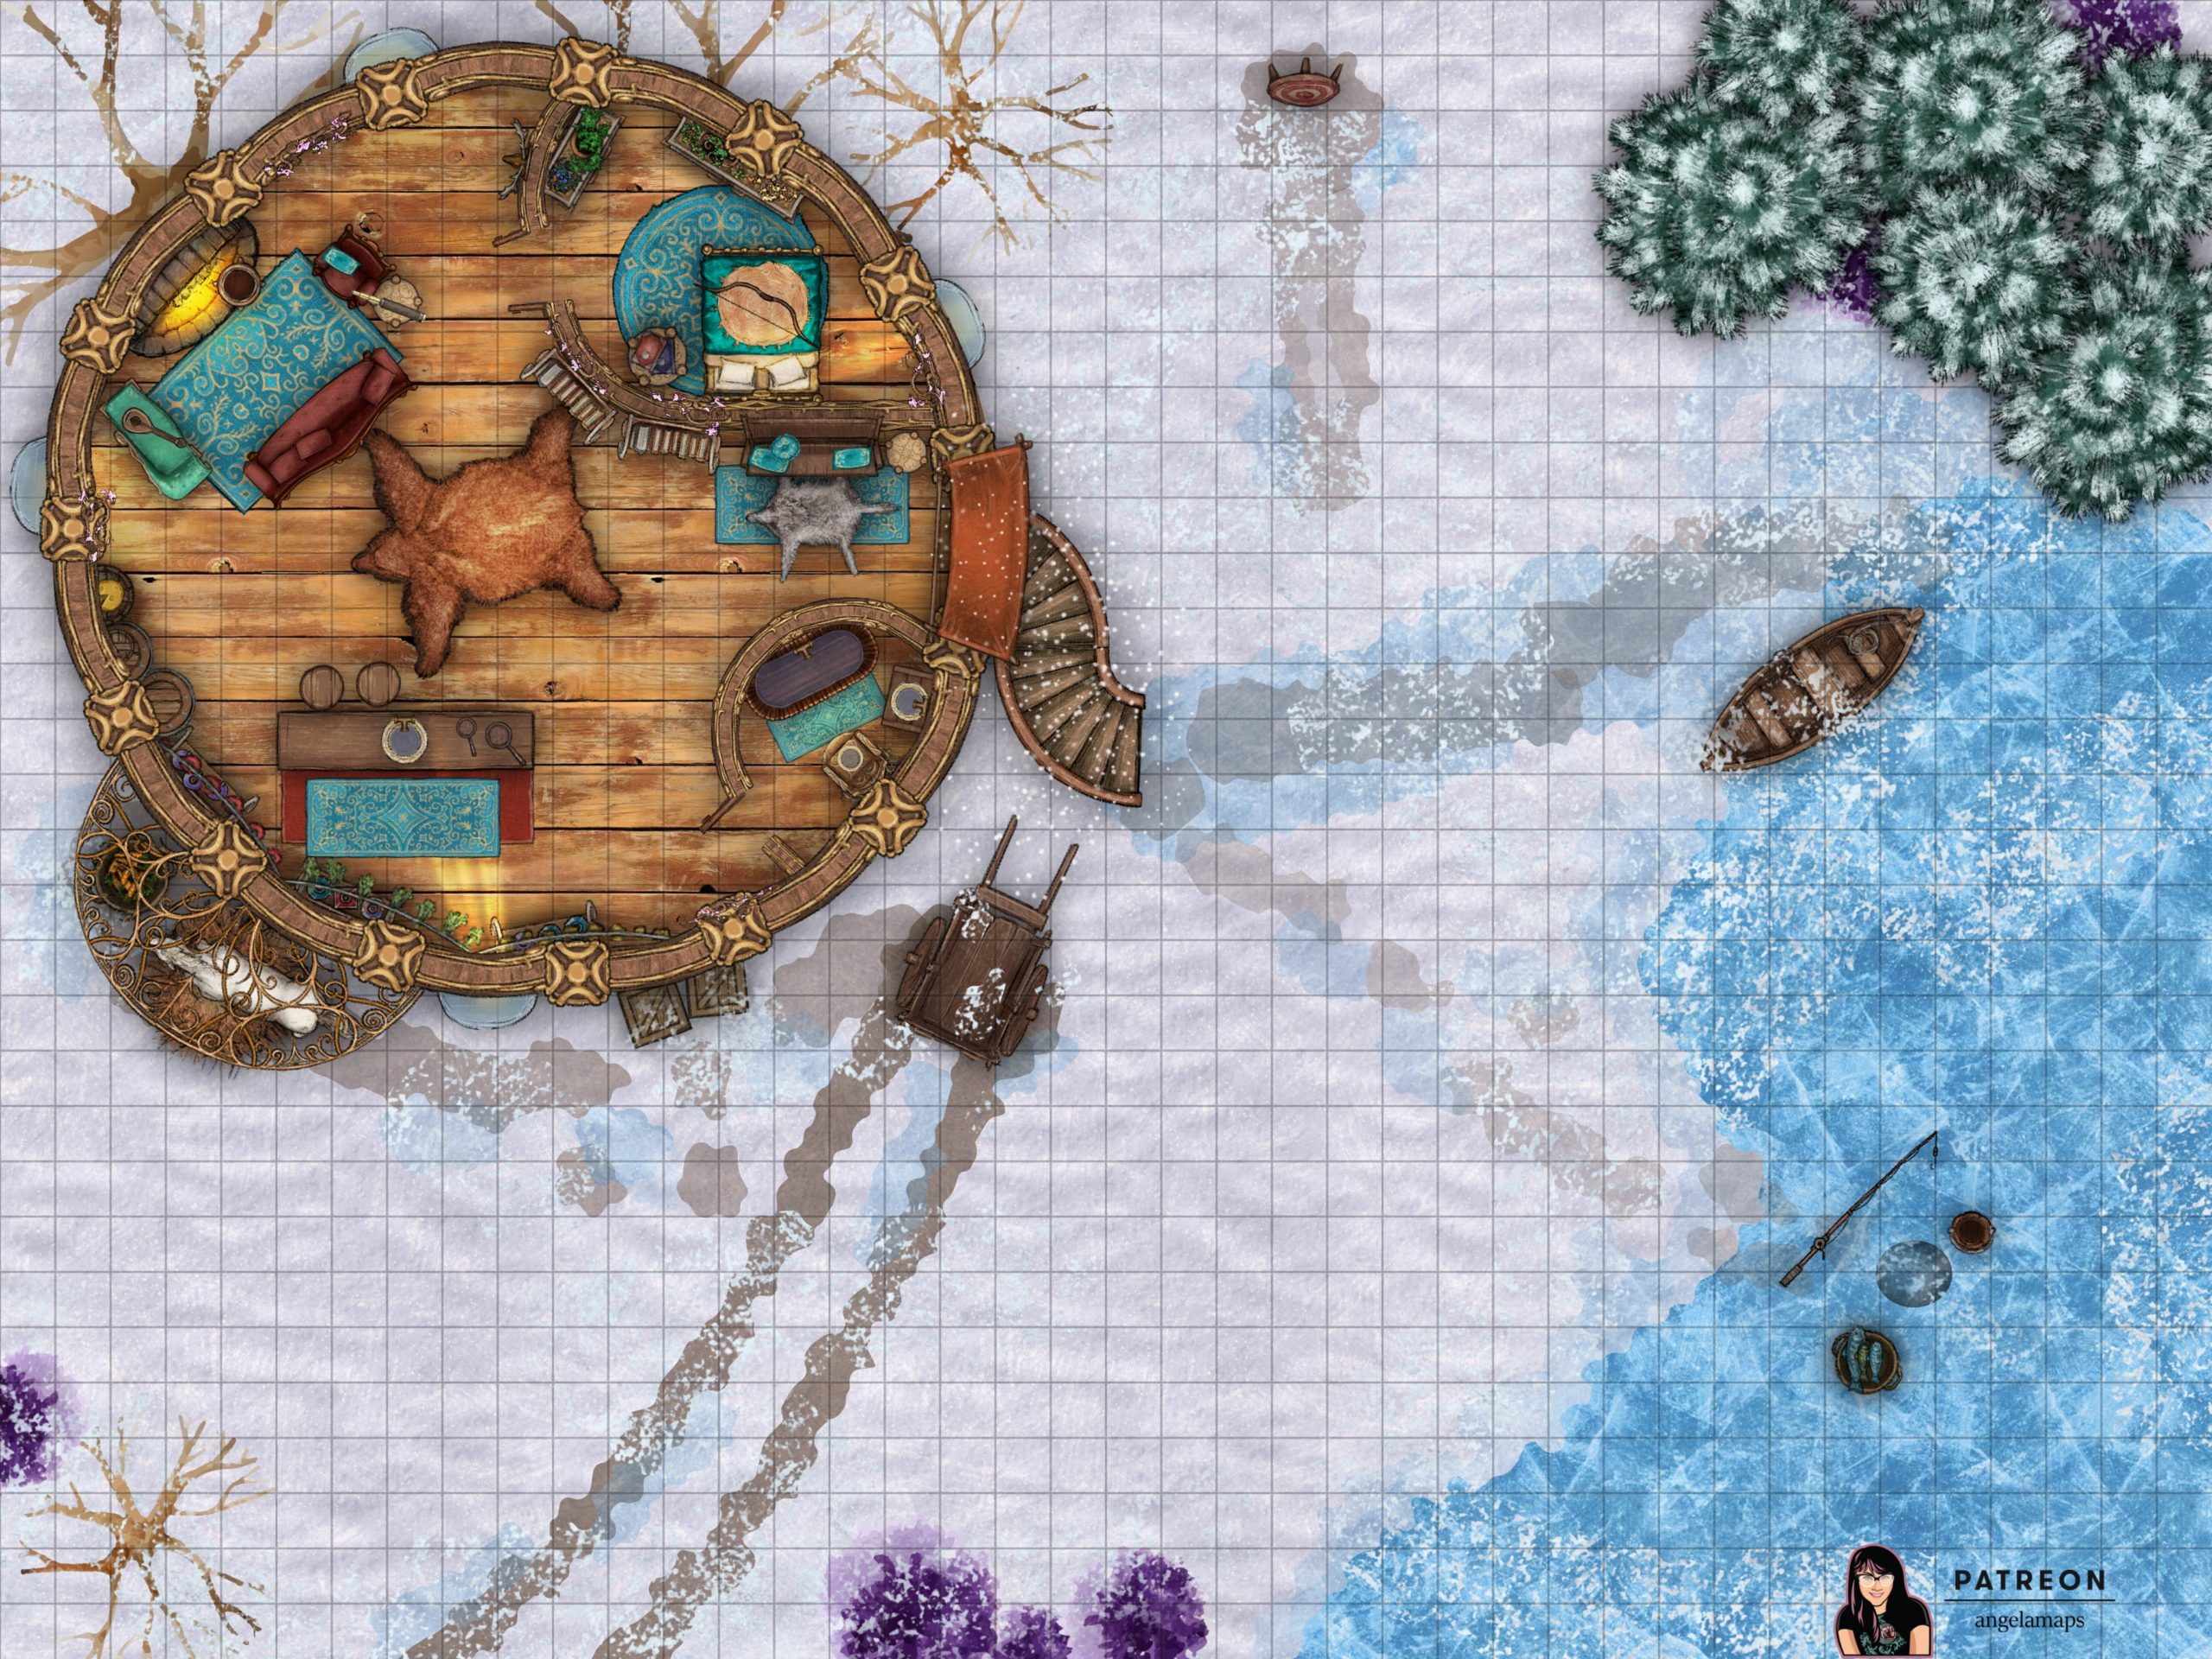 Small cabin in the woods in winter, somewhat elven looking, battle encounter map for D&D or pathfinder.